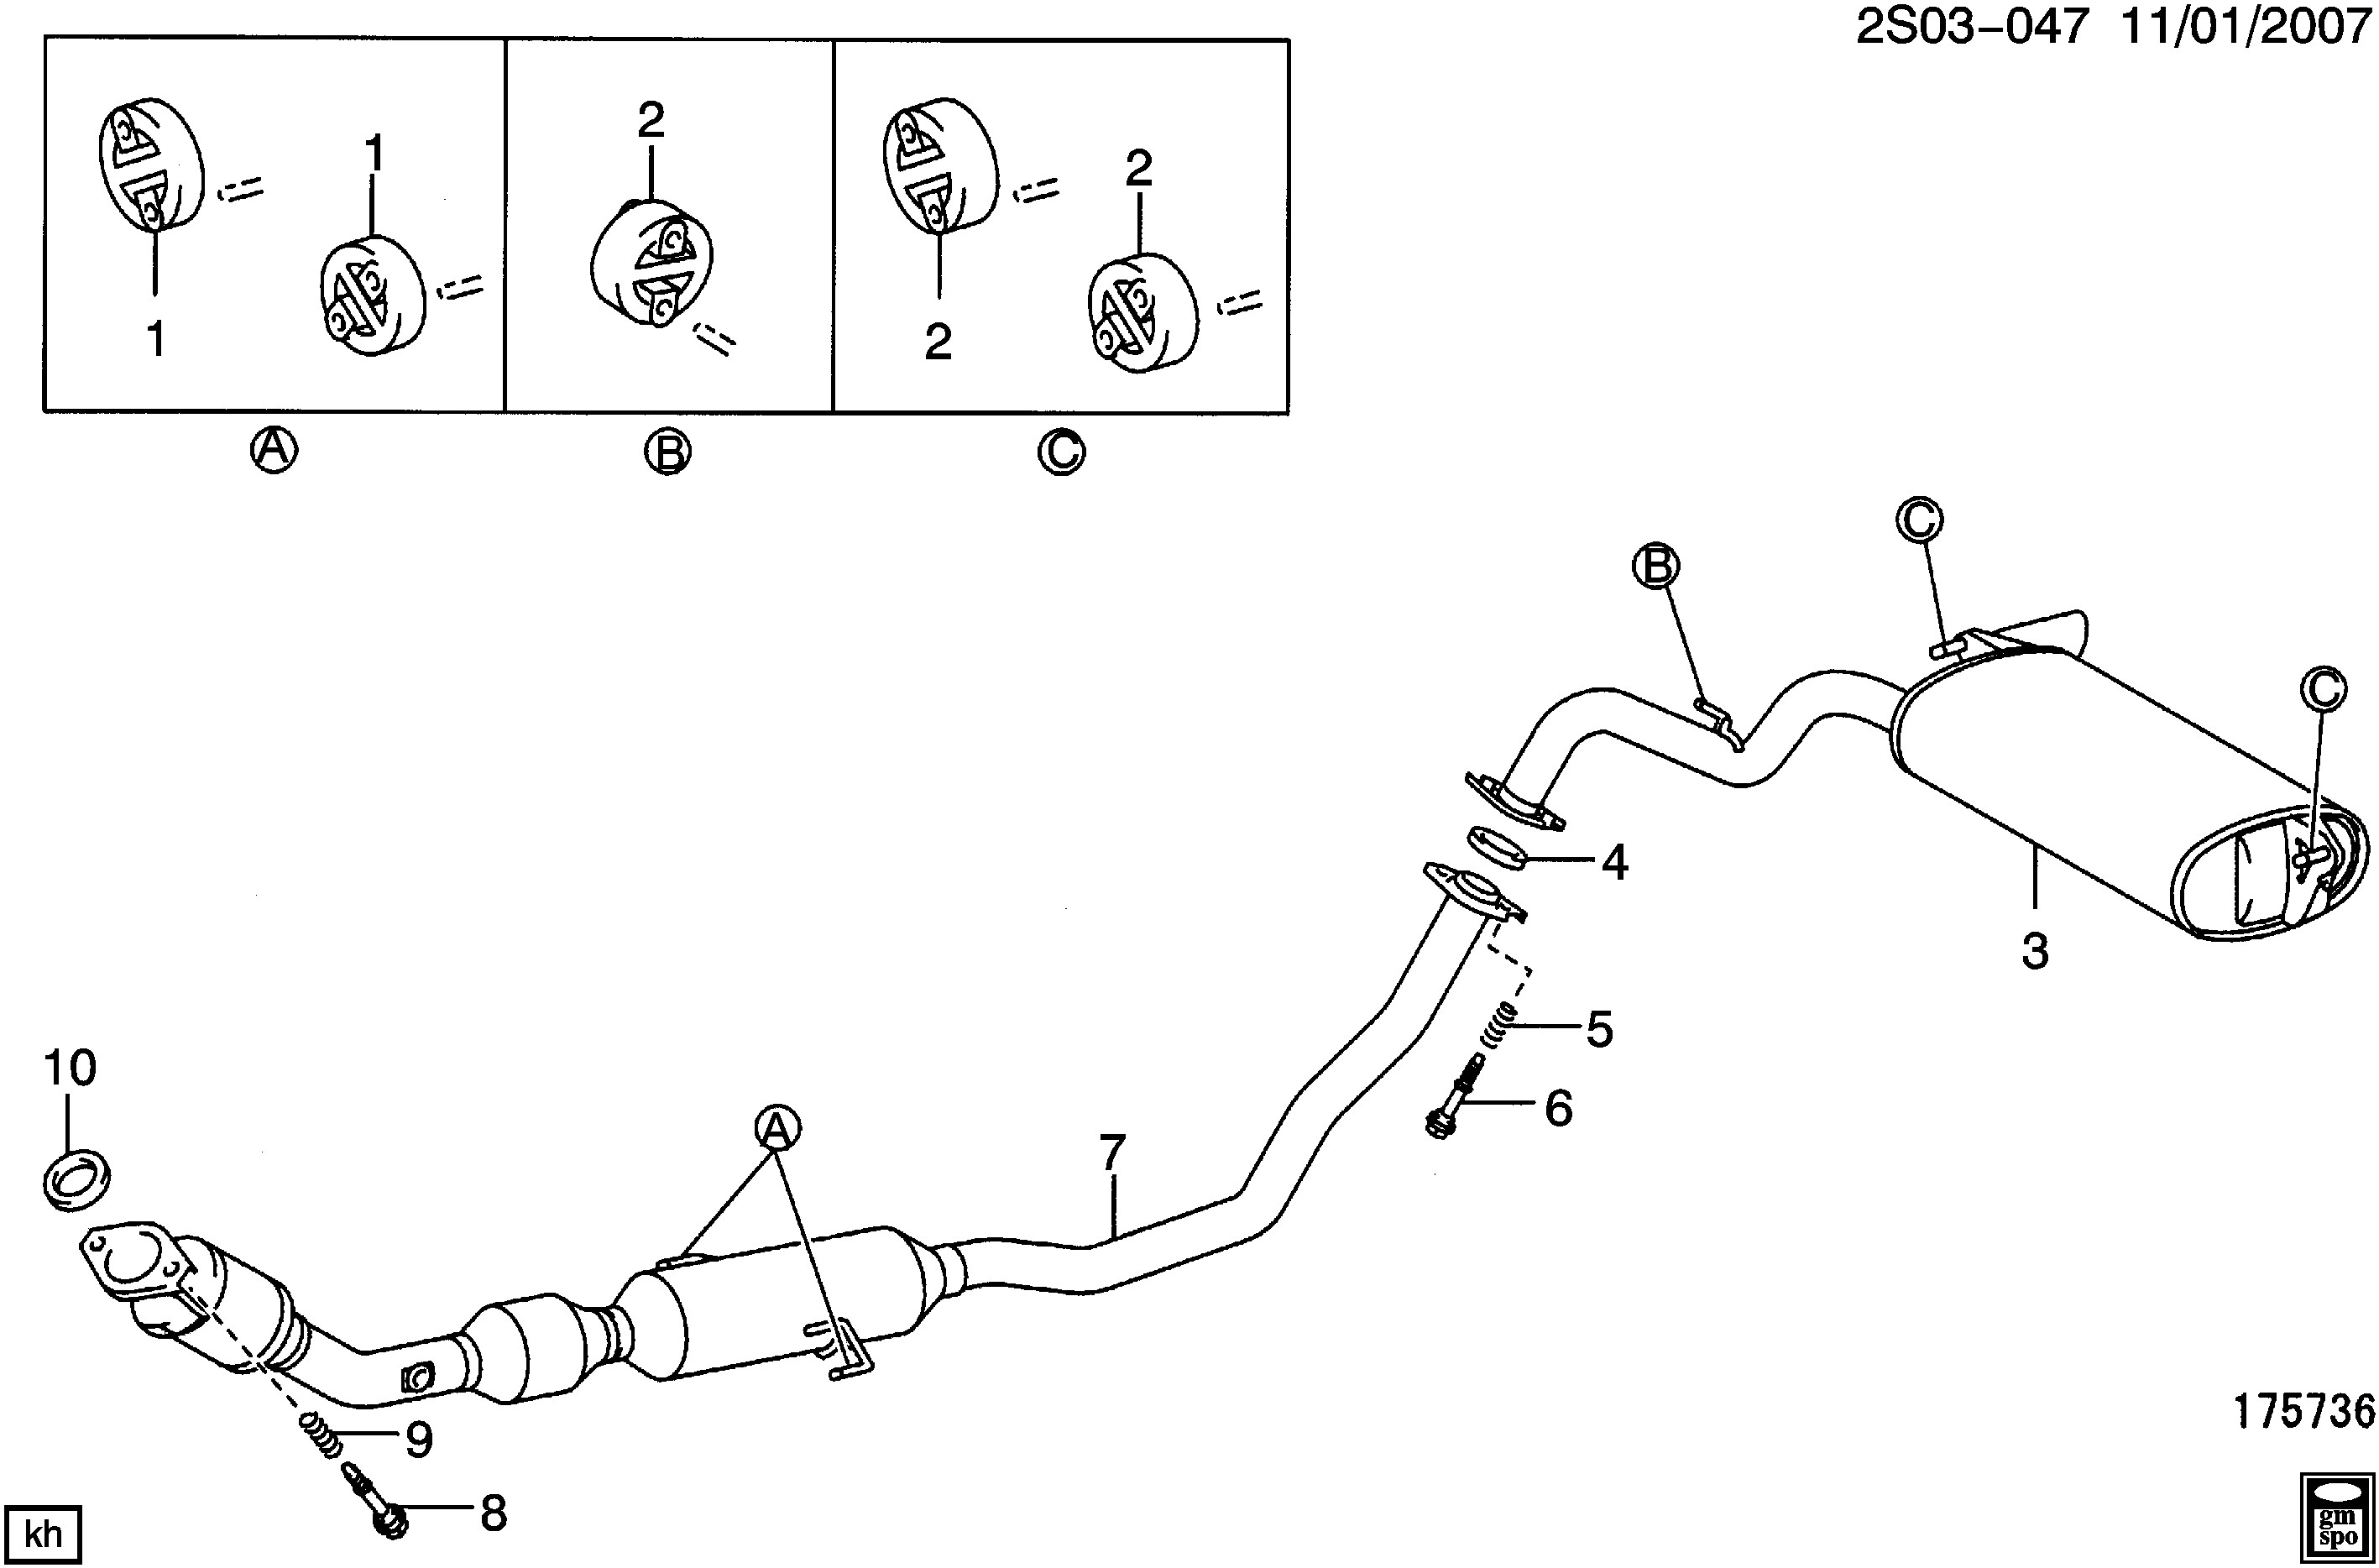 Exhaust System Parts Diagram Pontiac Vibe Sl26 Exhaust System Lay 1 8 8 Epc Line Nemiga Of Exhaust System Parts Diagram Esaabparts Saab 9 3 9440 Engine Parts Exhaust System